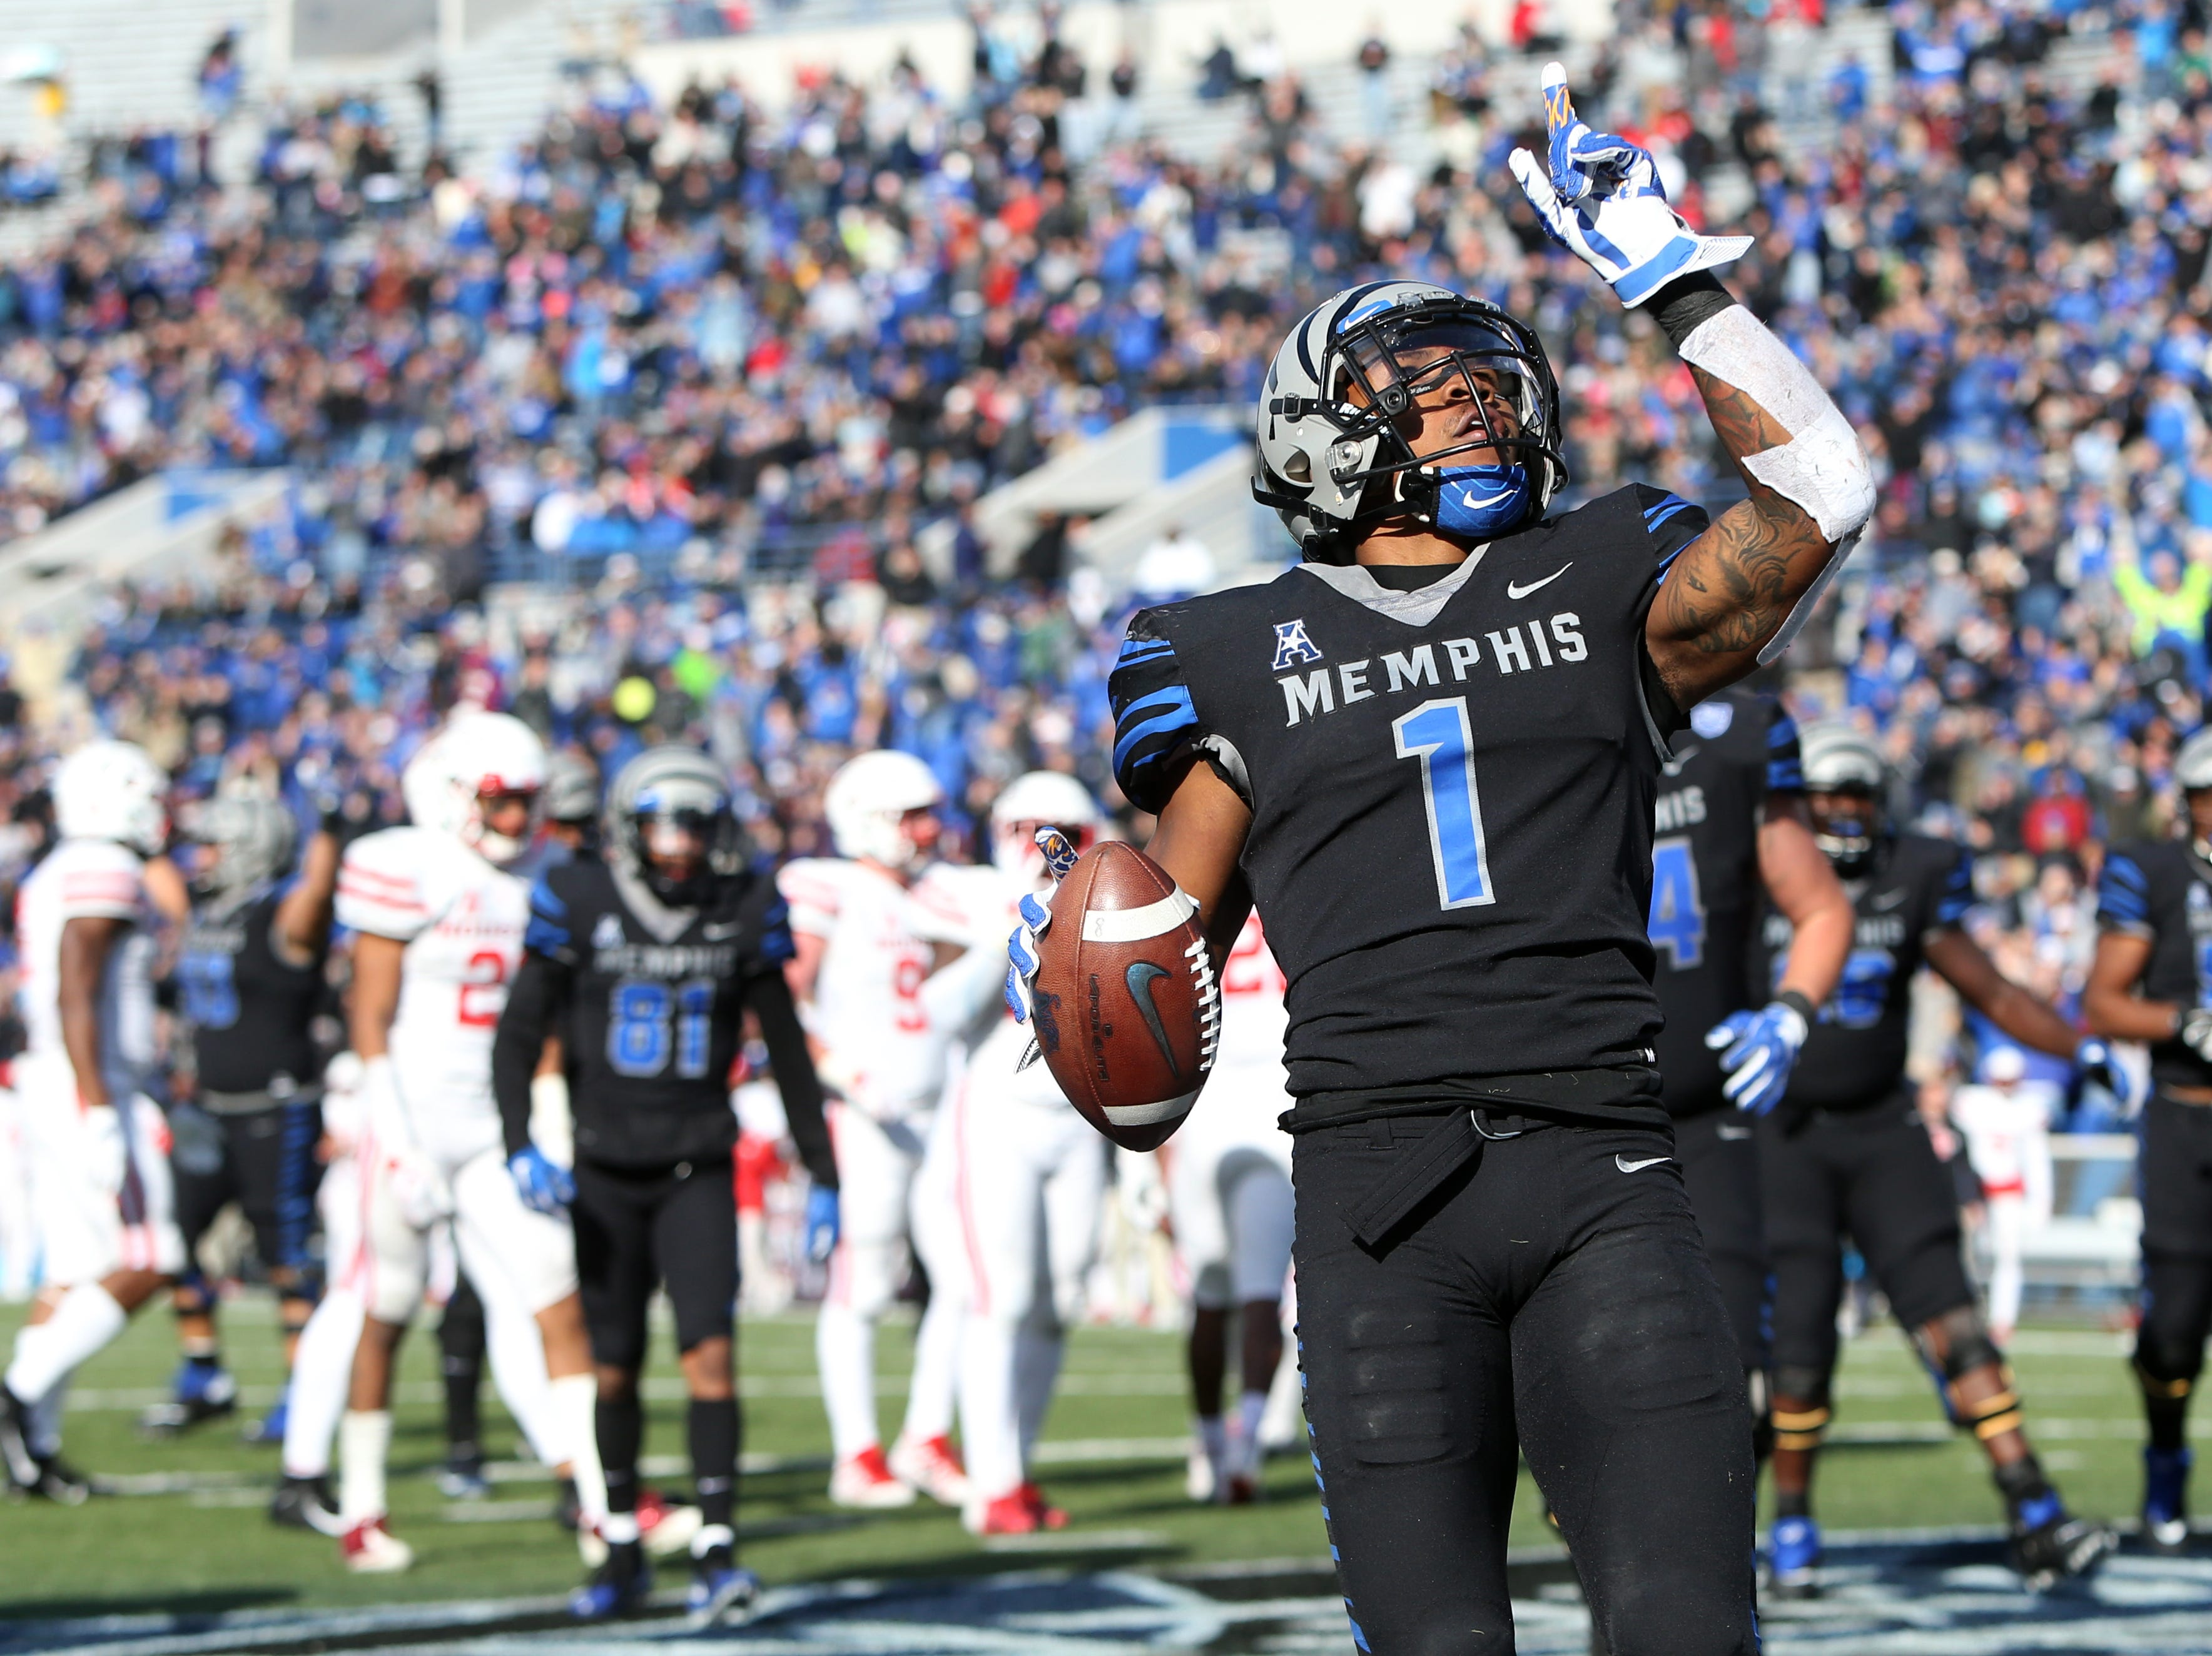 Memphis' Tony Pollard celebrates his touchdown against the Houston Cougars as the Tigers win the AAC West title 52-31 at the Liberty Bowl on Friday, Nov. 23, 2018.